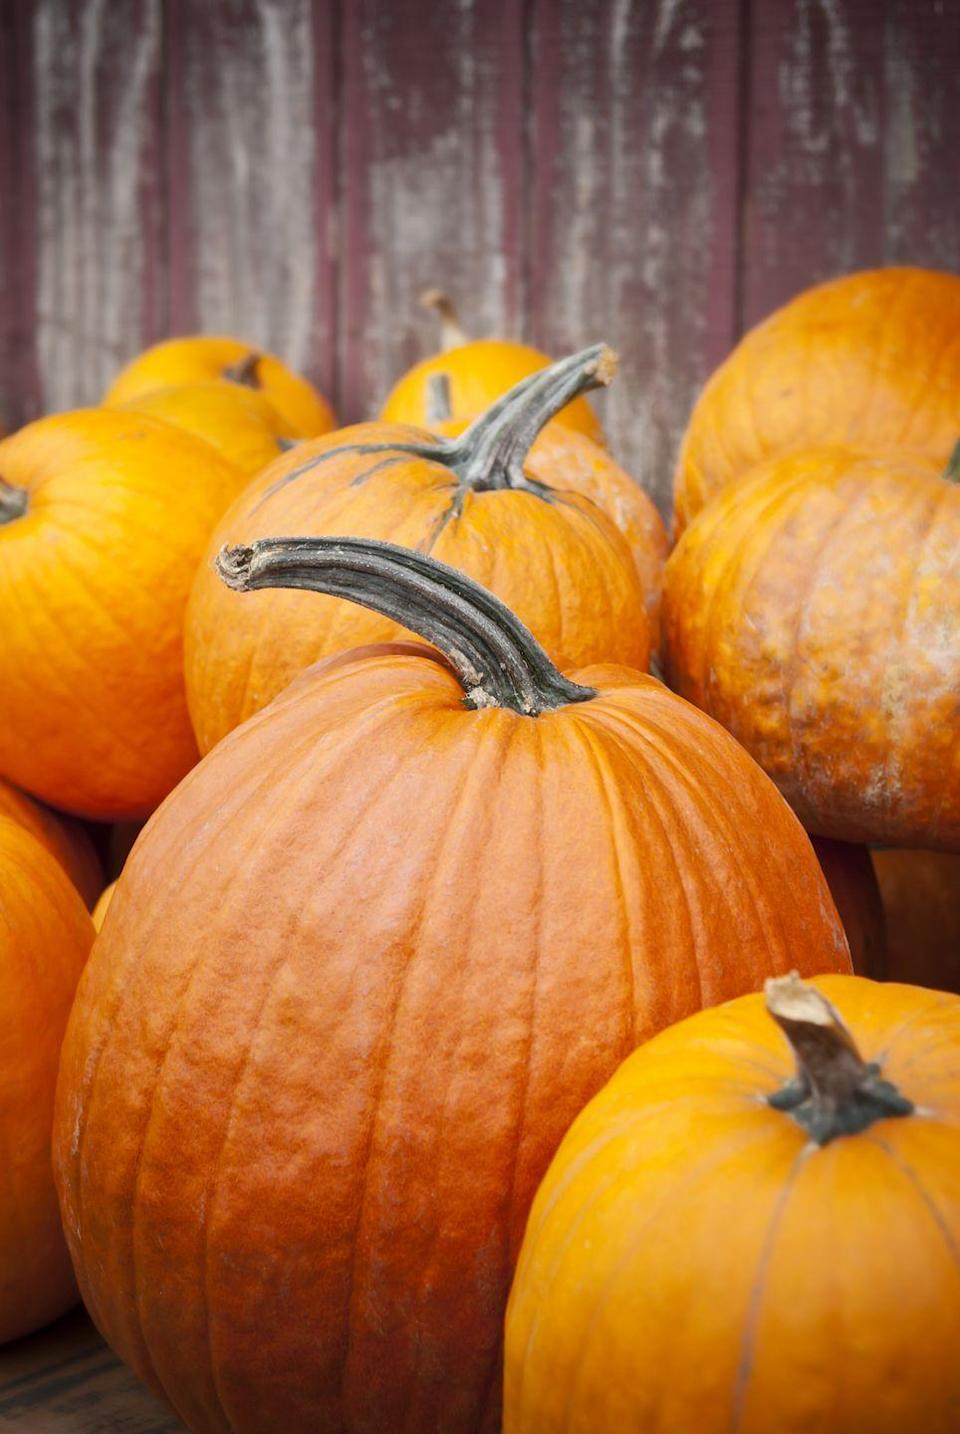 """<p>The first Halloween-like festivities in America predominantly arose in the southern colonies. People began to celebrate the harvest, swap ghost stories and even tell each other's fortunes. However, those early fall festivals were known as """"play parties"""" at the time. </p>"""